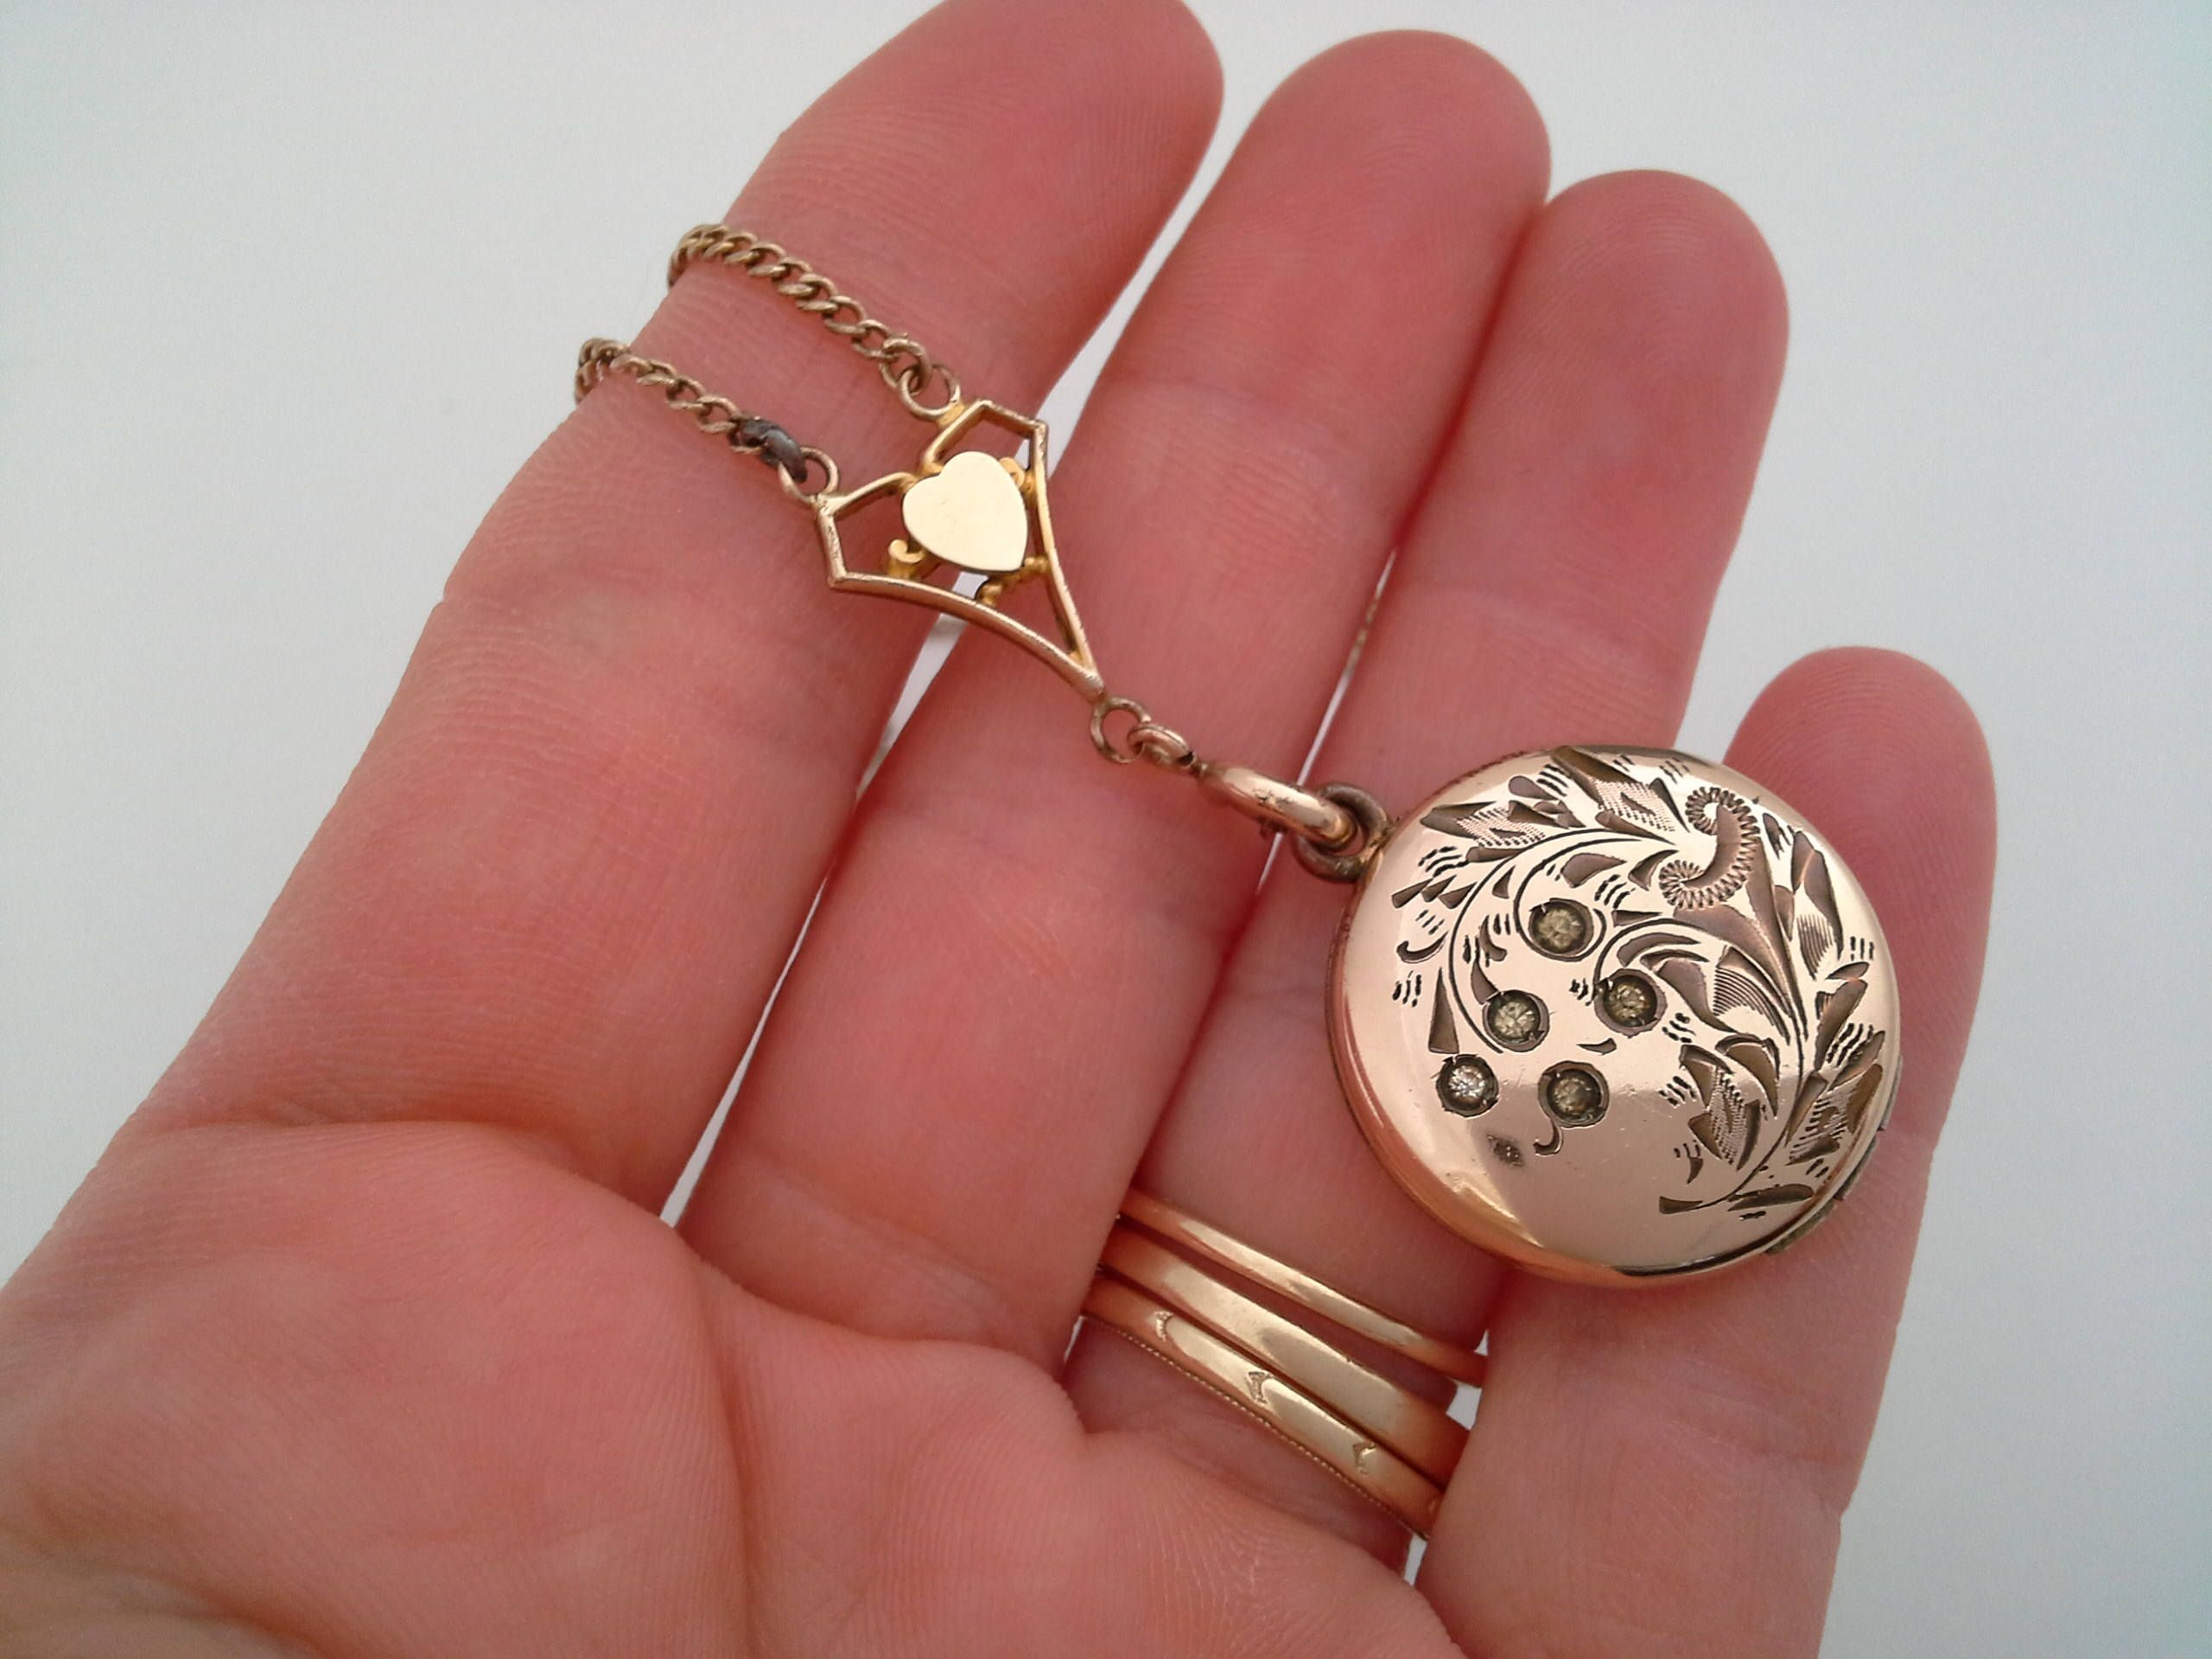 Antique Jewelry Small Antique Locket Necklace with 16 12k Gold Filled Chain Circle Gold Tone Rhinestone Locket